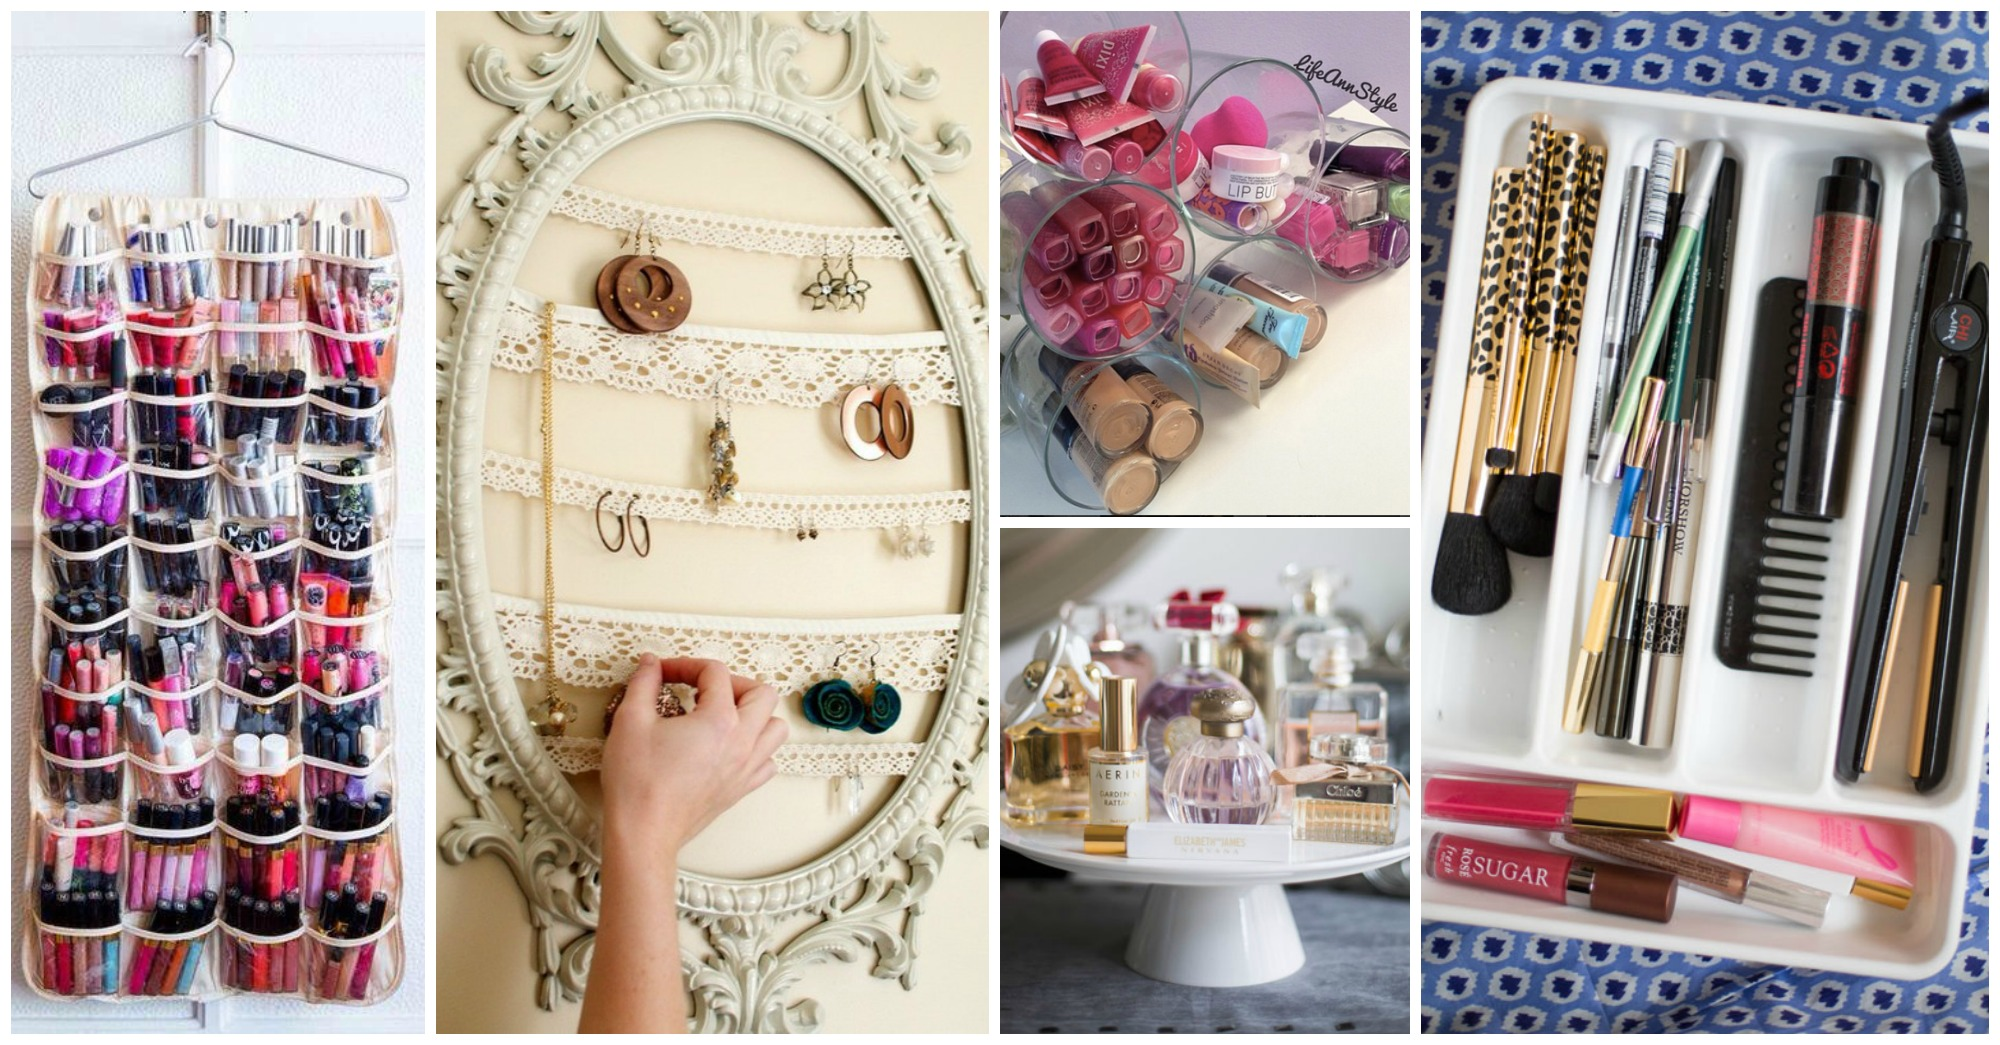 15 Awesome Storage Hacks You Should Not Miss